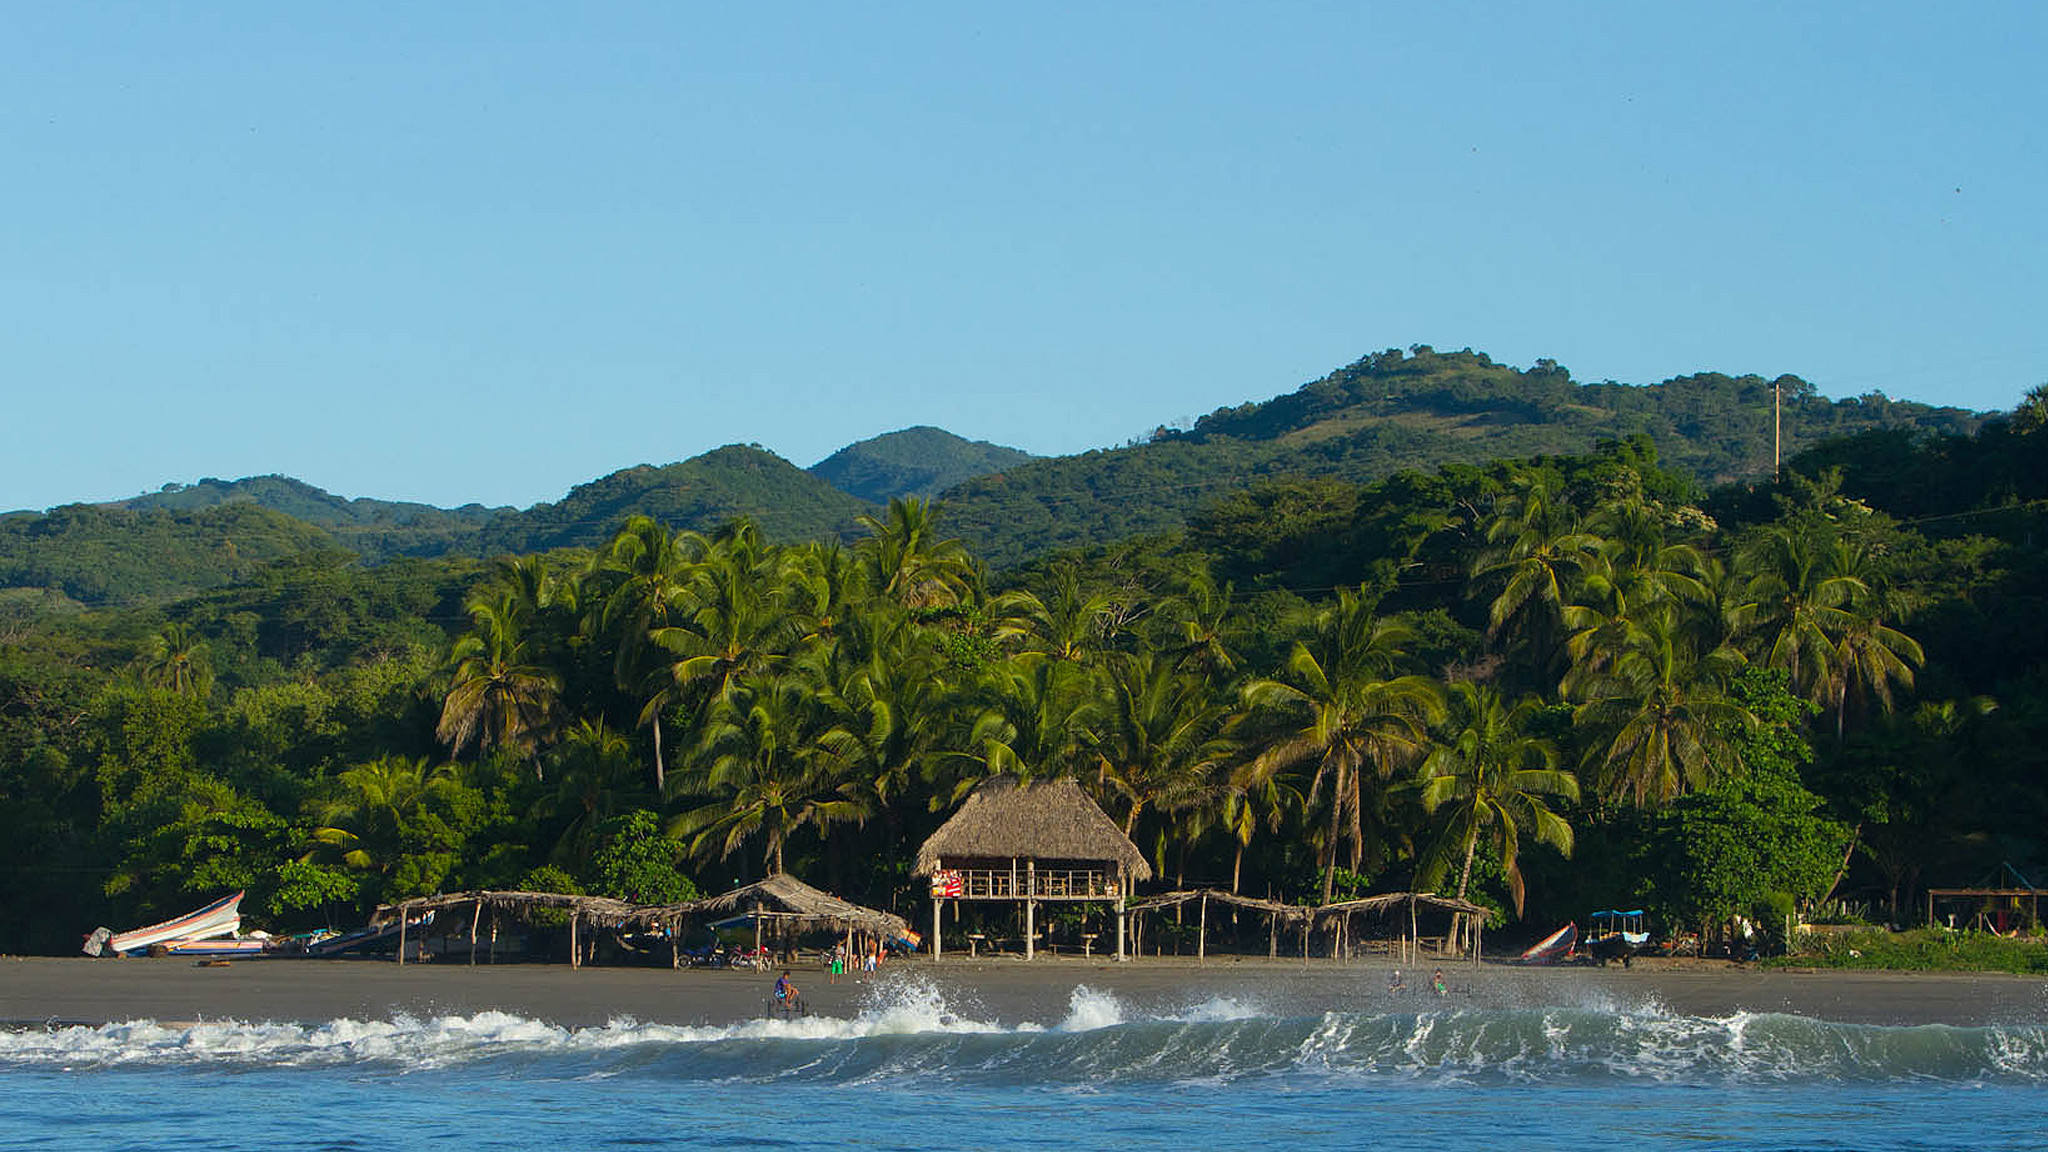 2048x1152 El Salvador countryside